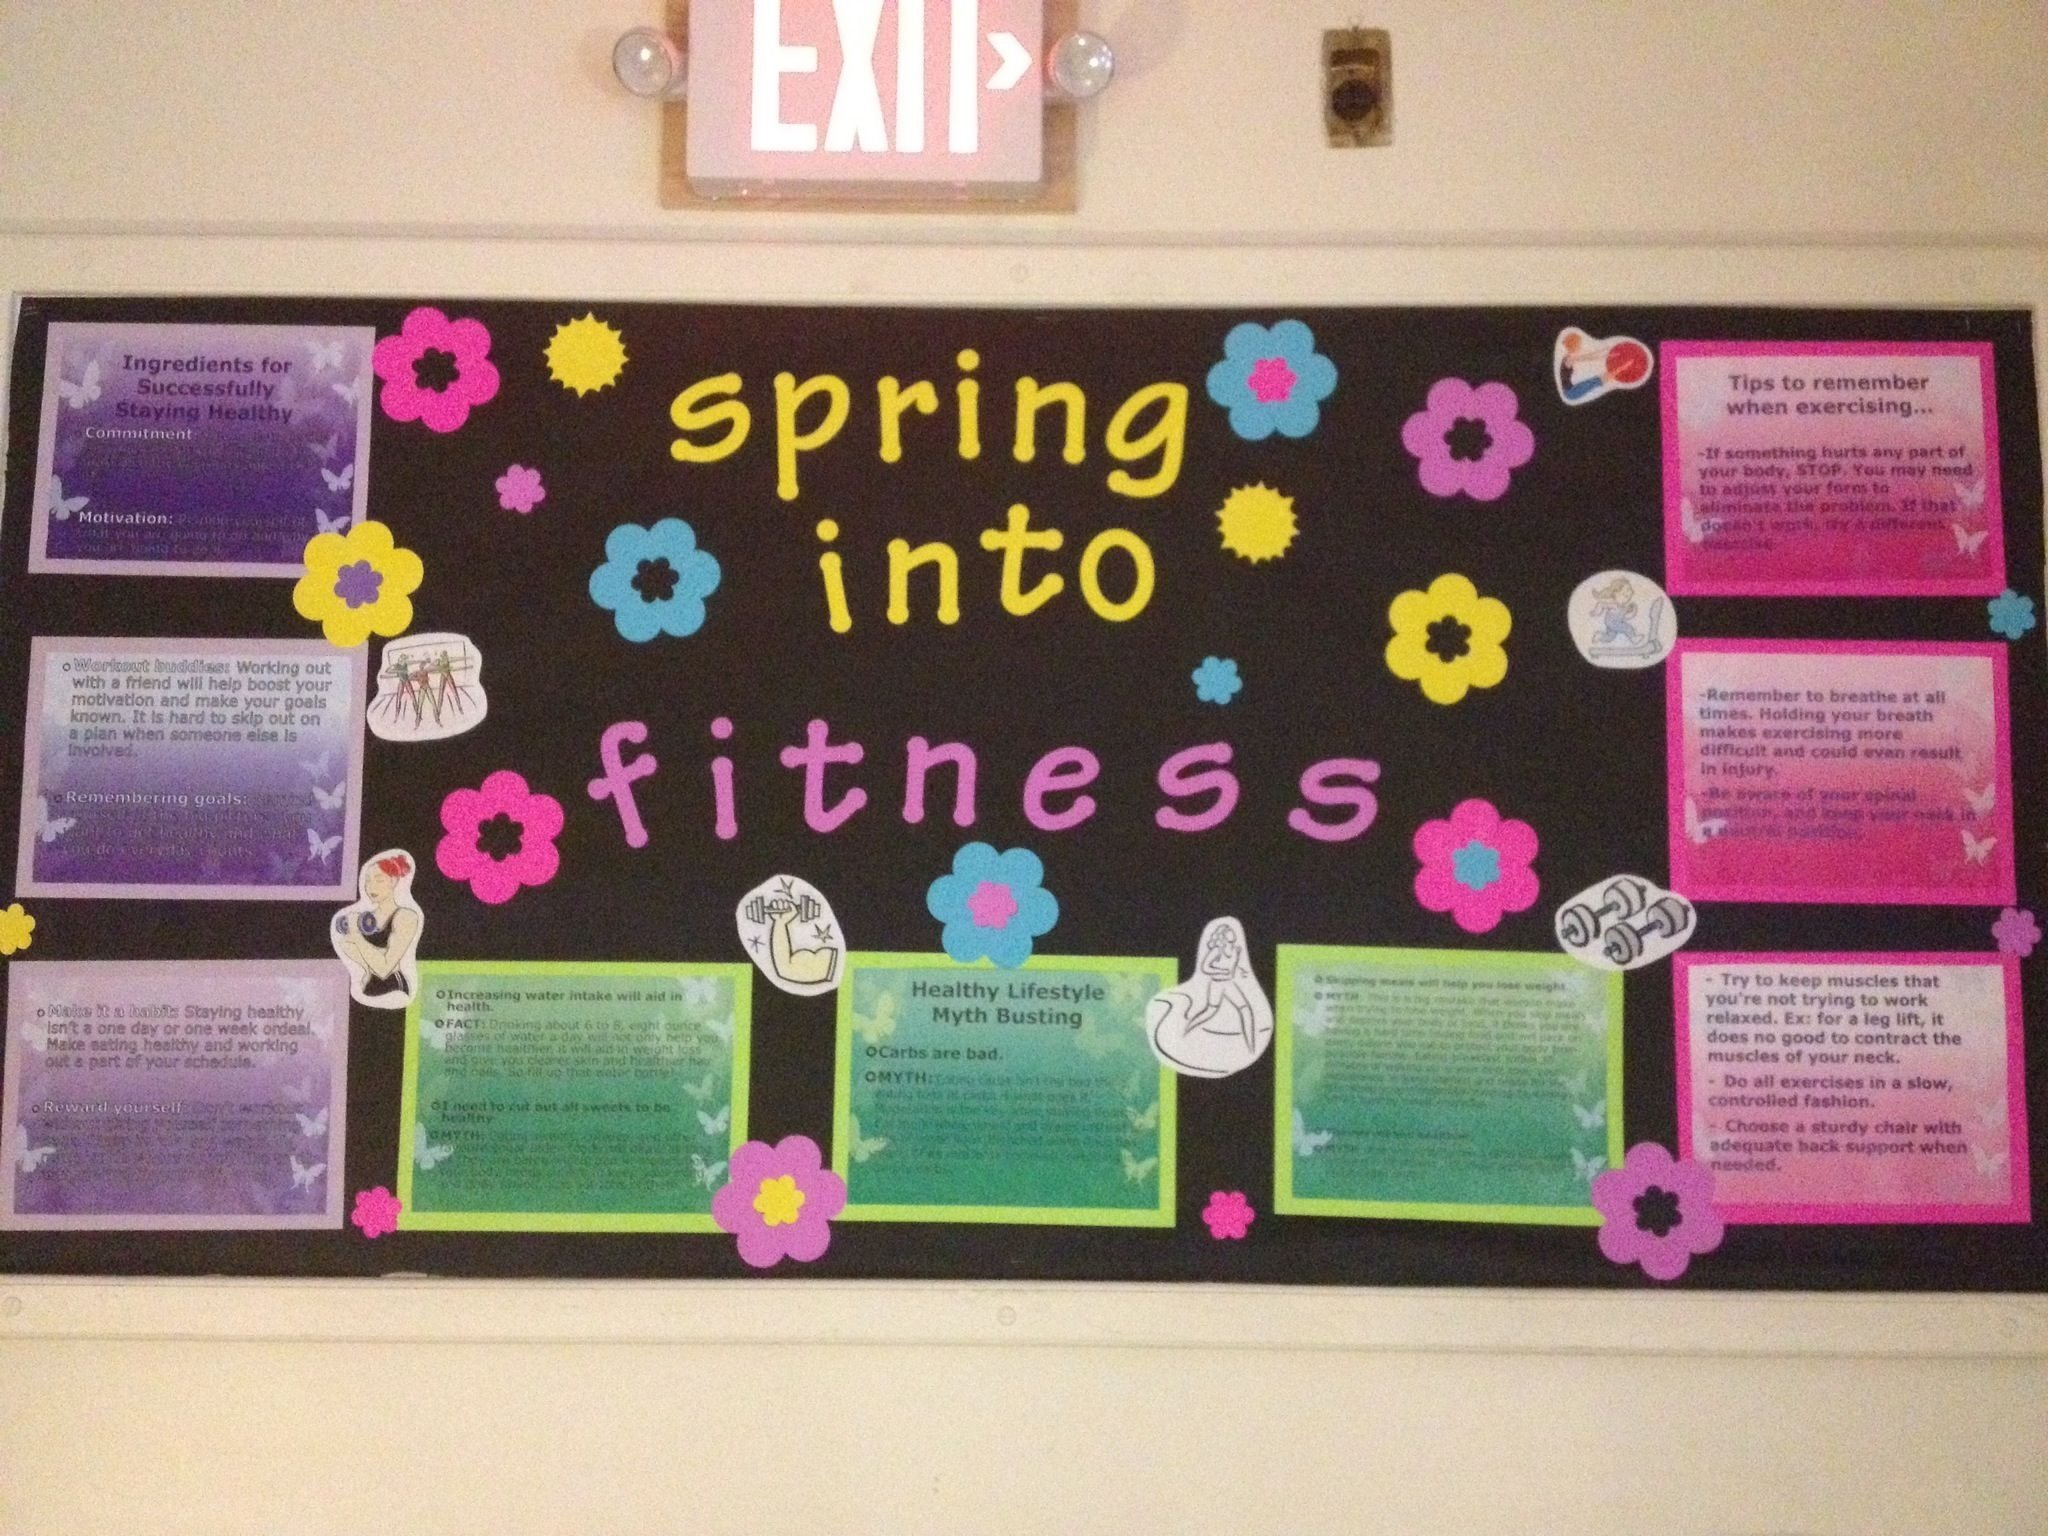 10 Perfect Bulletin Board Ideas For Workplace spring into fitness bulletin board ra adventures pinterest 2020